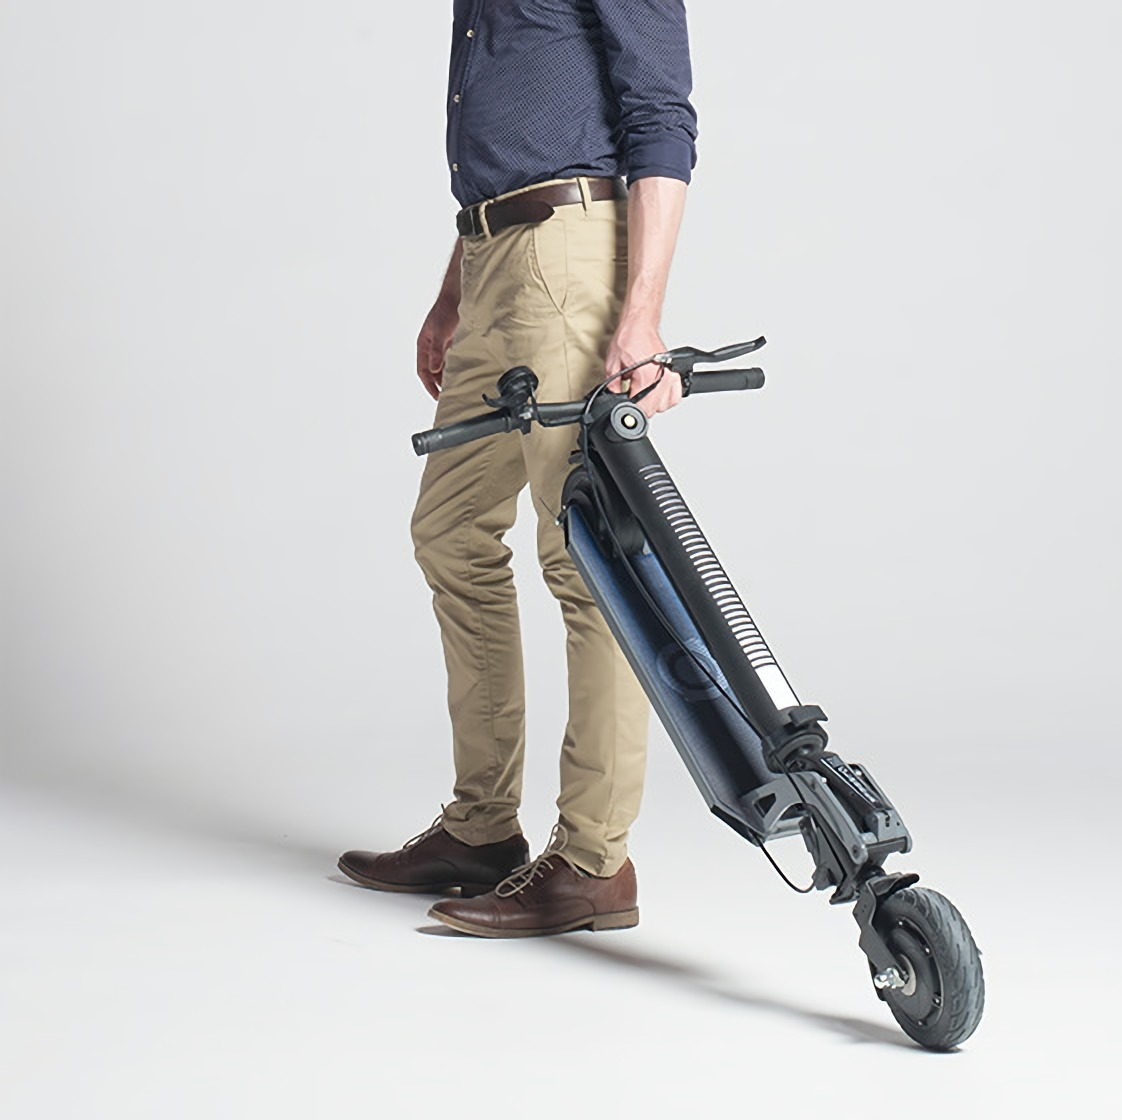 it's a foldable e-scooter - kick & fold